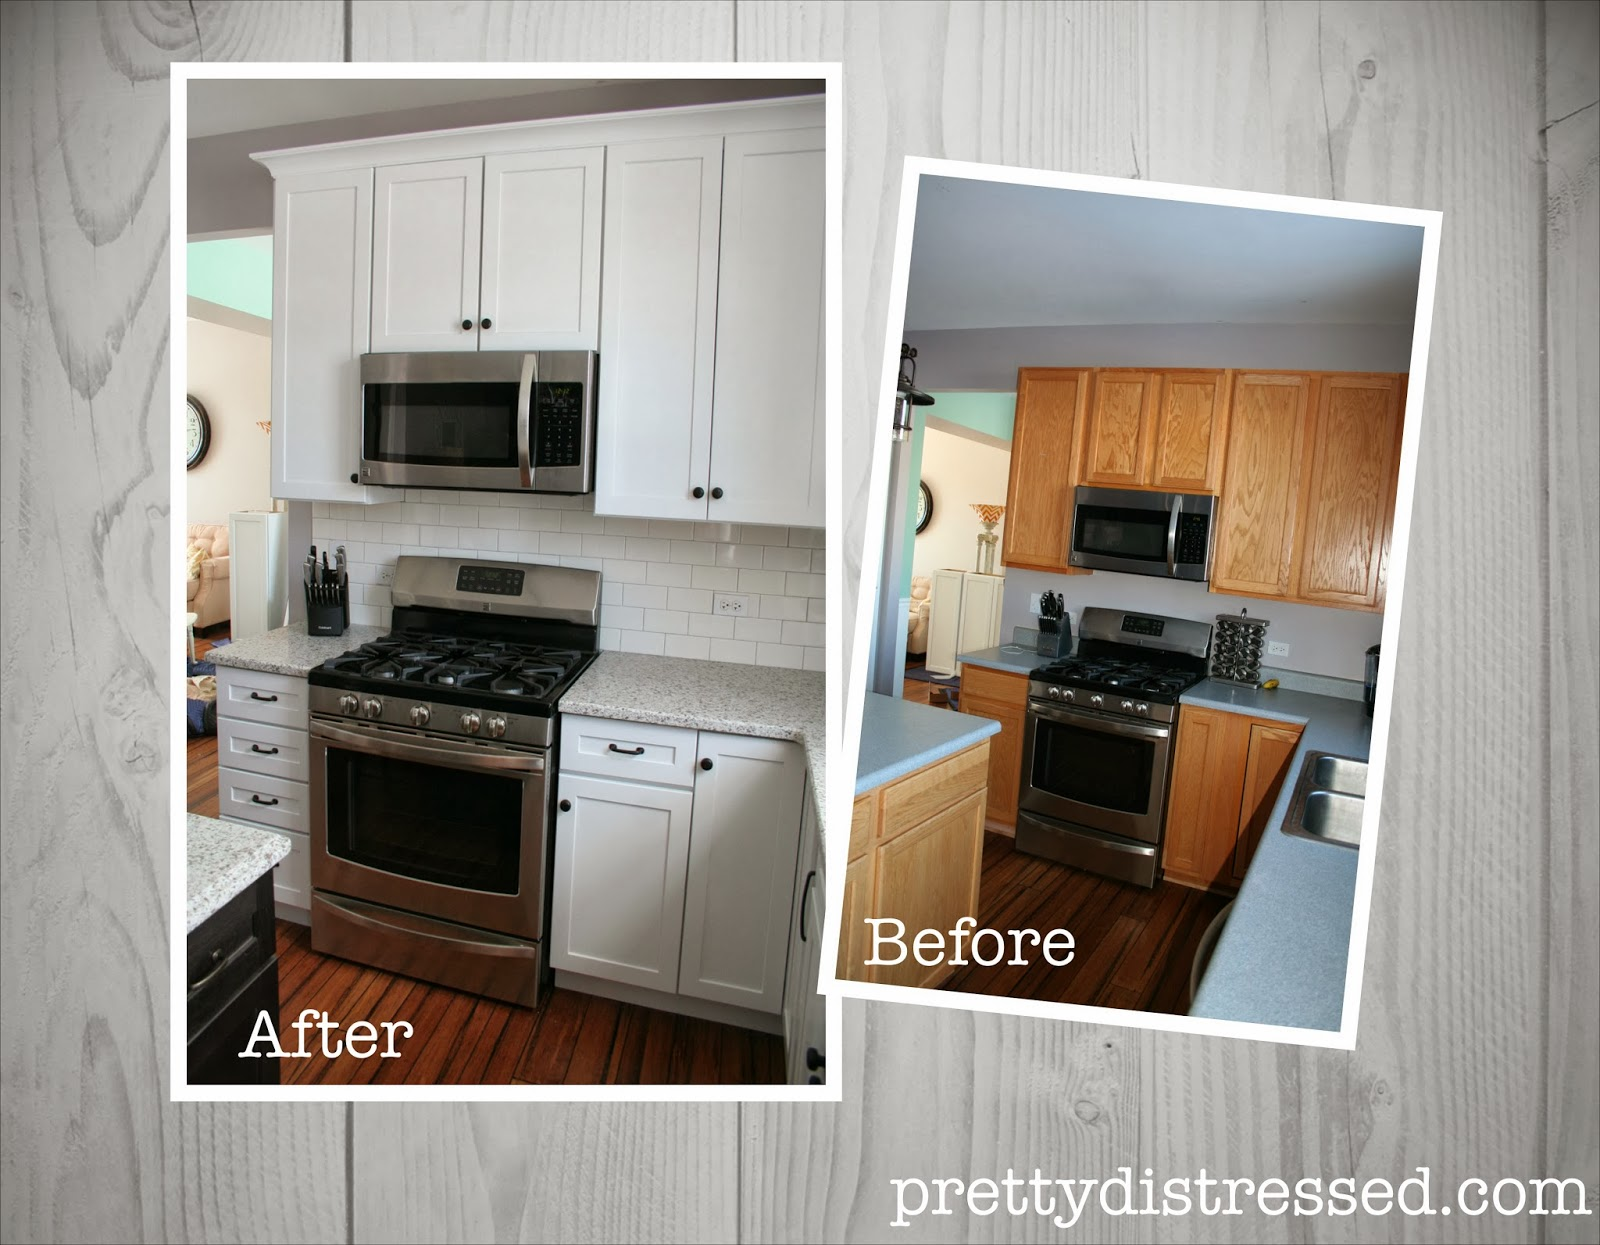 Kitchen cabinets in south elgin il - The Great Remodel Kitchen Before And After Pics